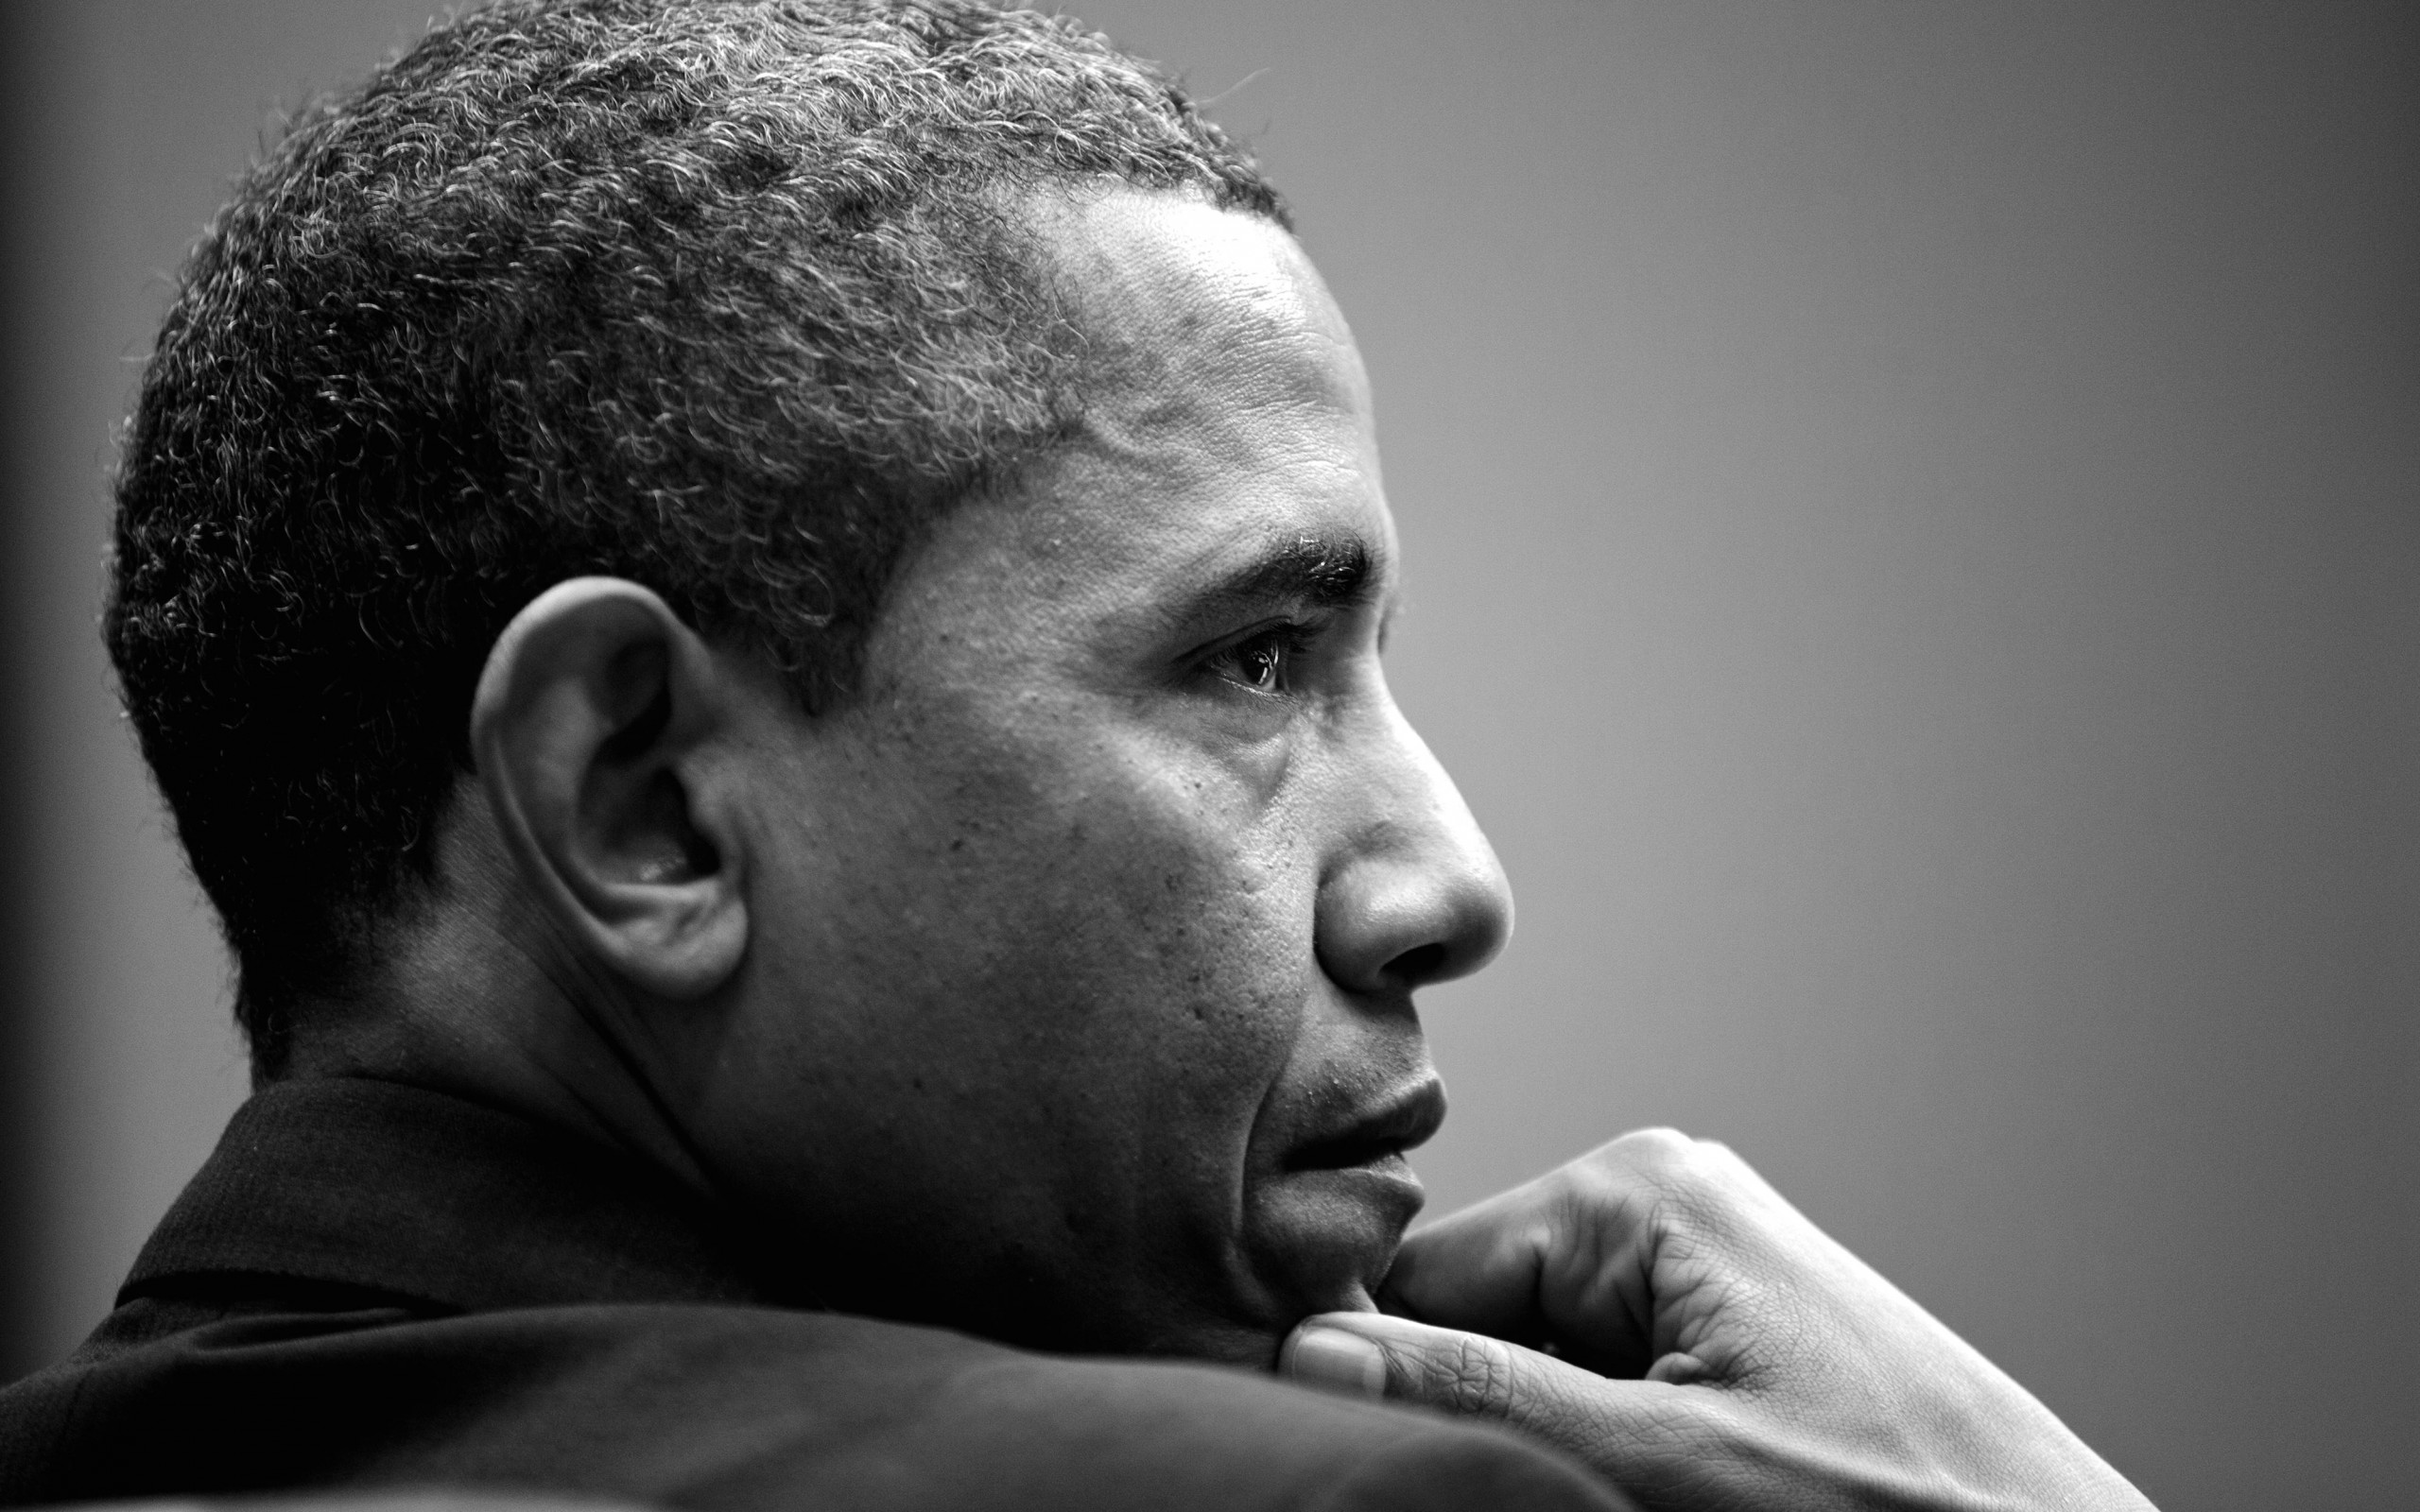 Barack Obama in Black & White Wallpaper for Desktop 2560x1600